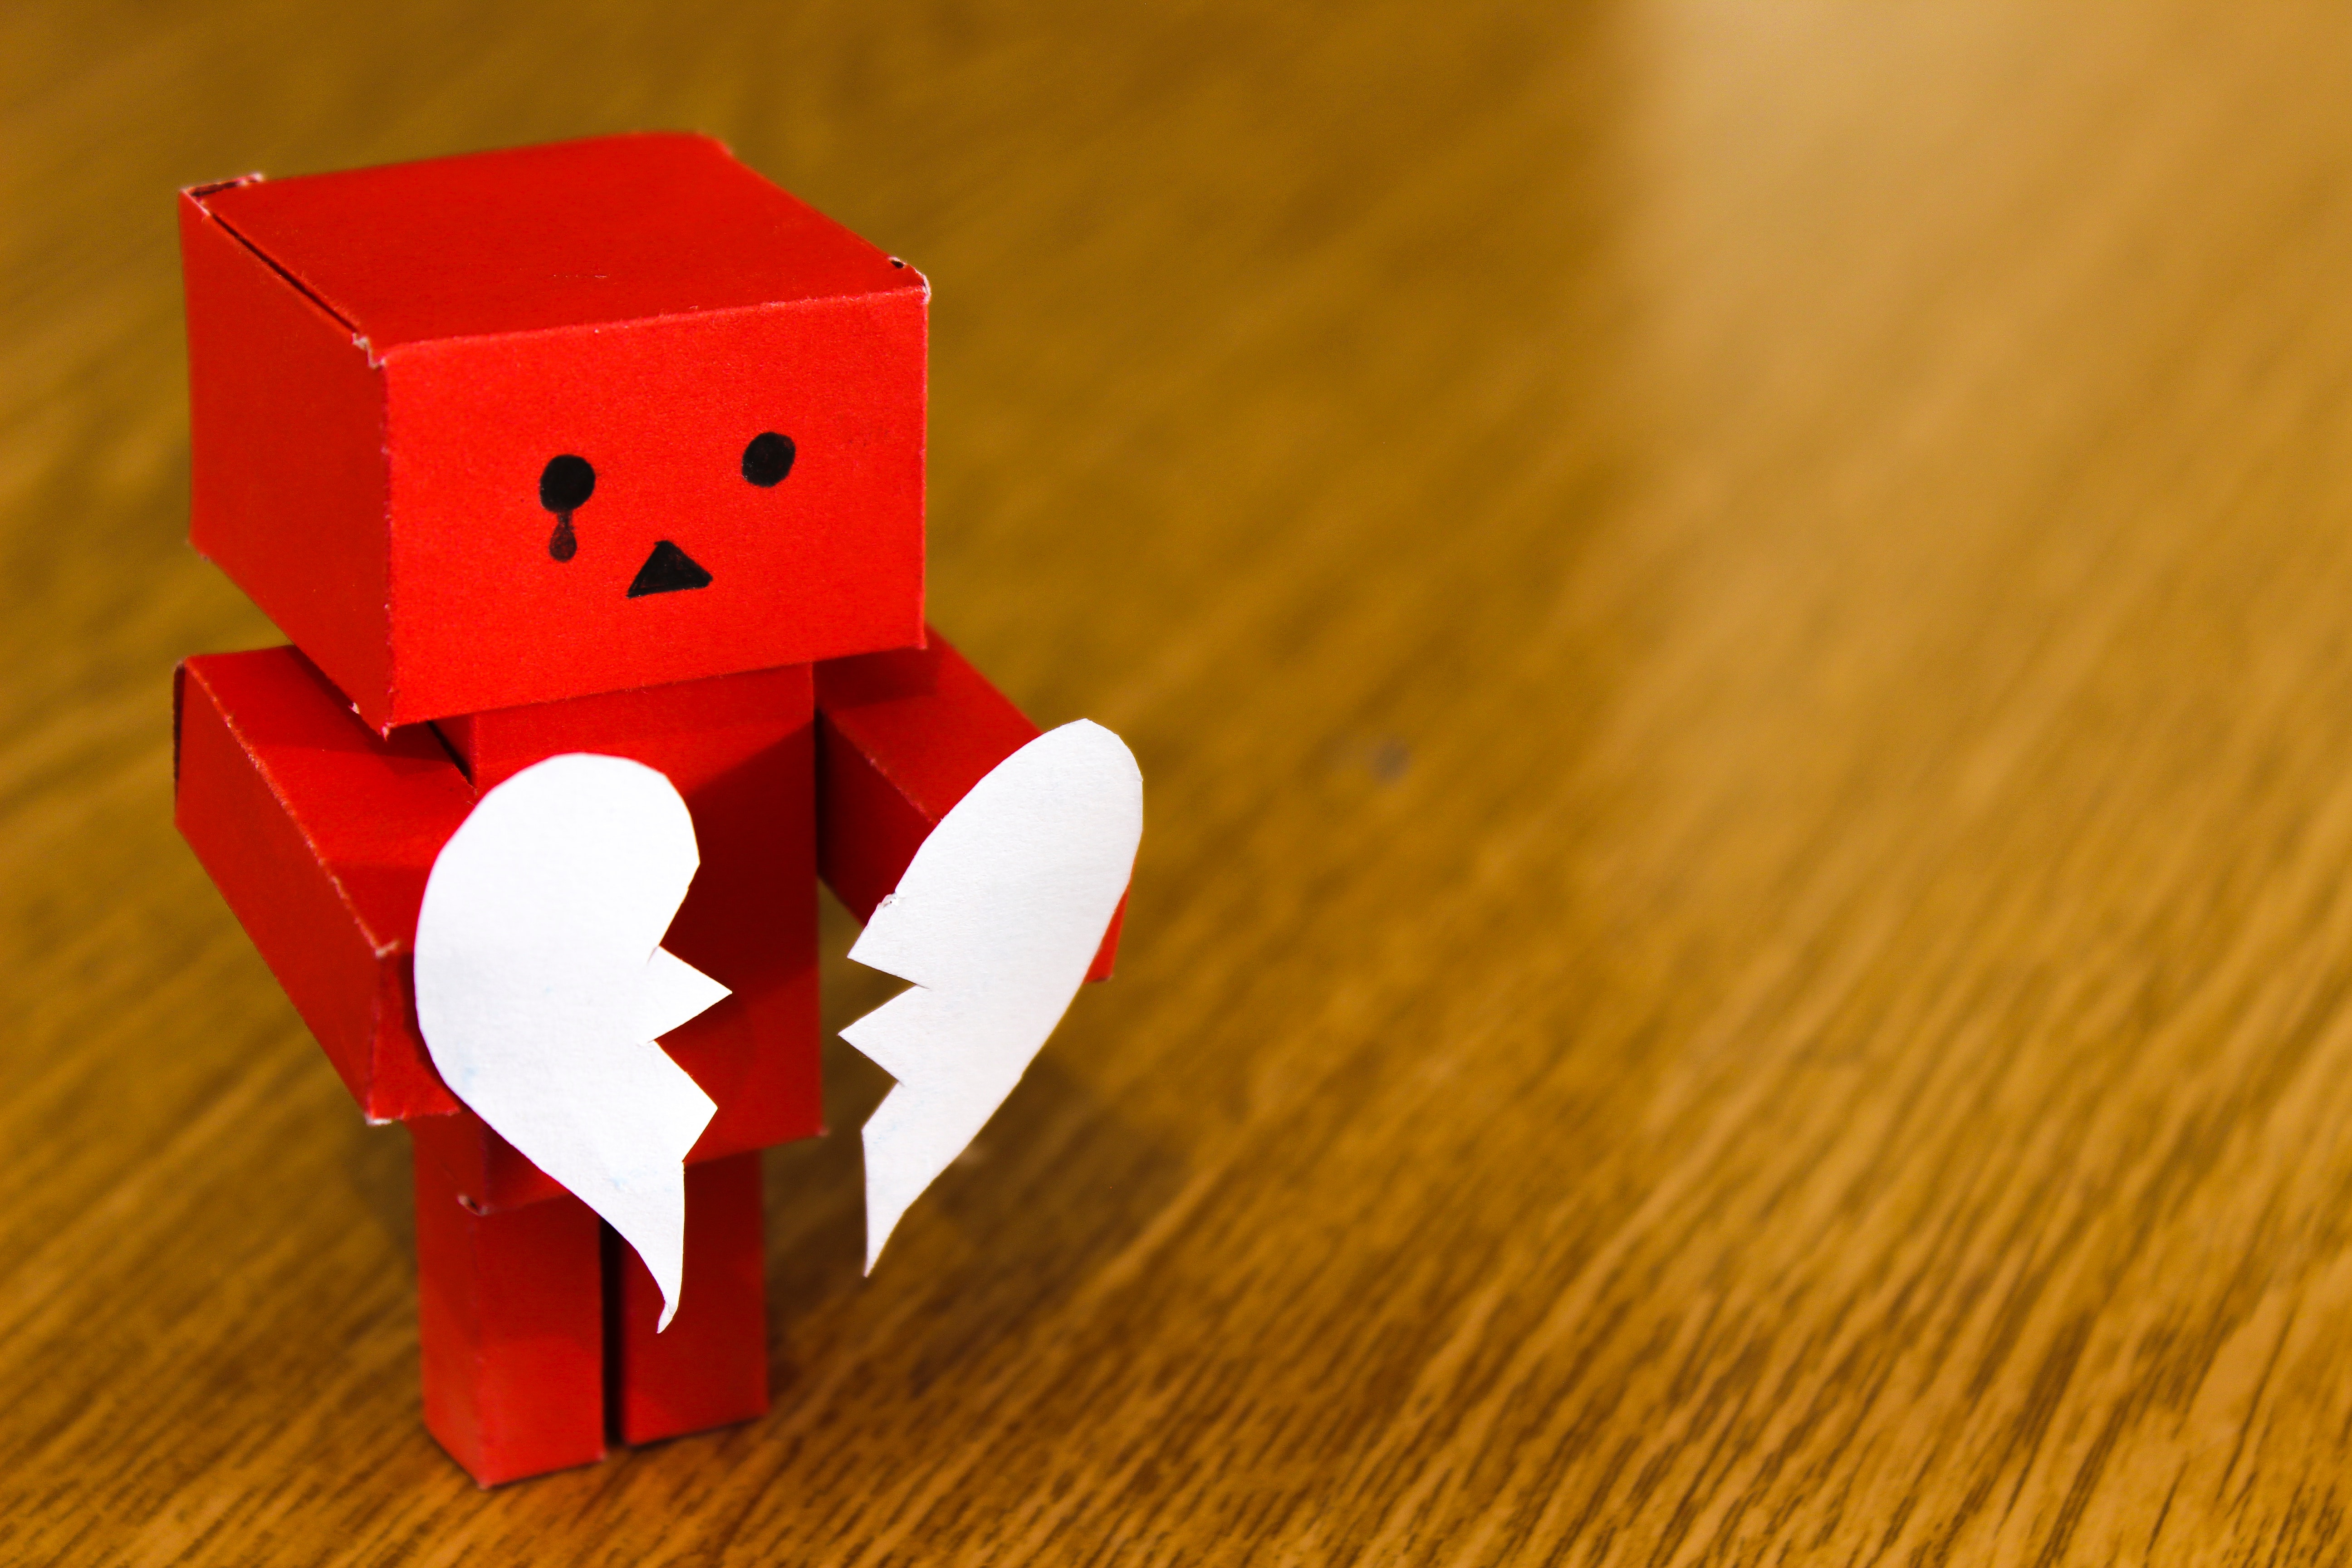 A crying robot made of paper holding a broken heart.